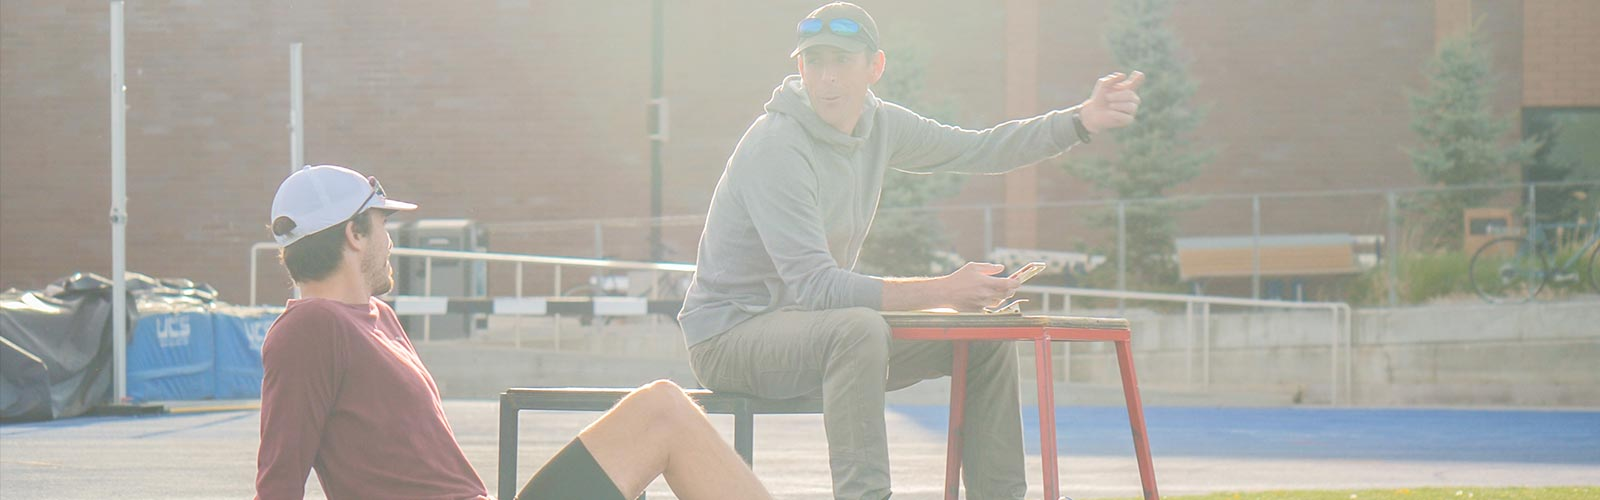 Track Club Coach Tim Broe giving tips sitting on a bench to a fellow runner.